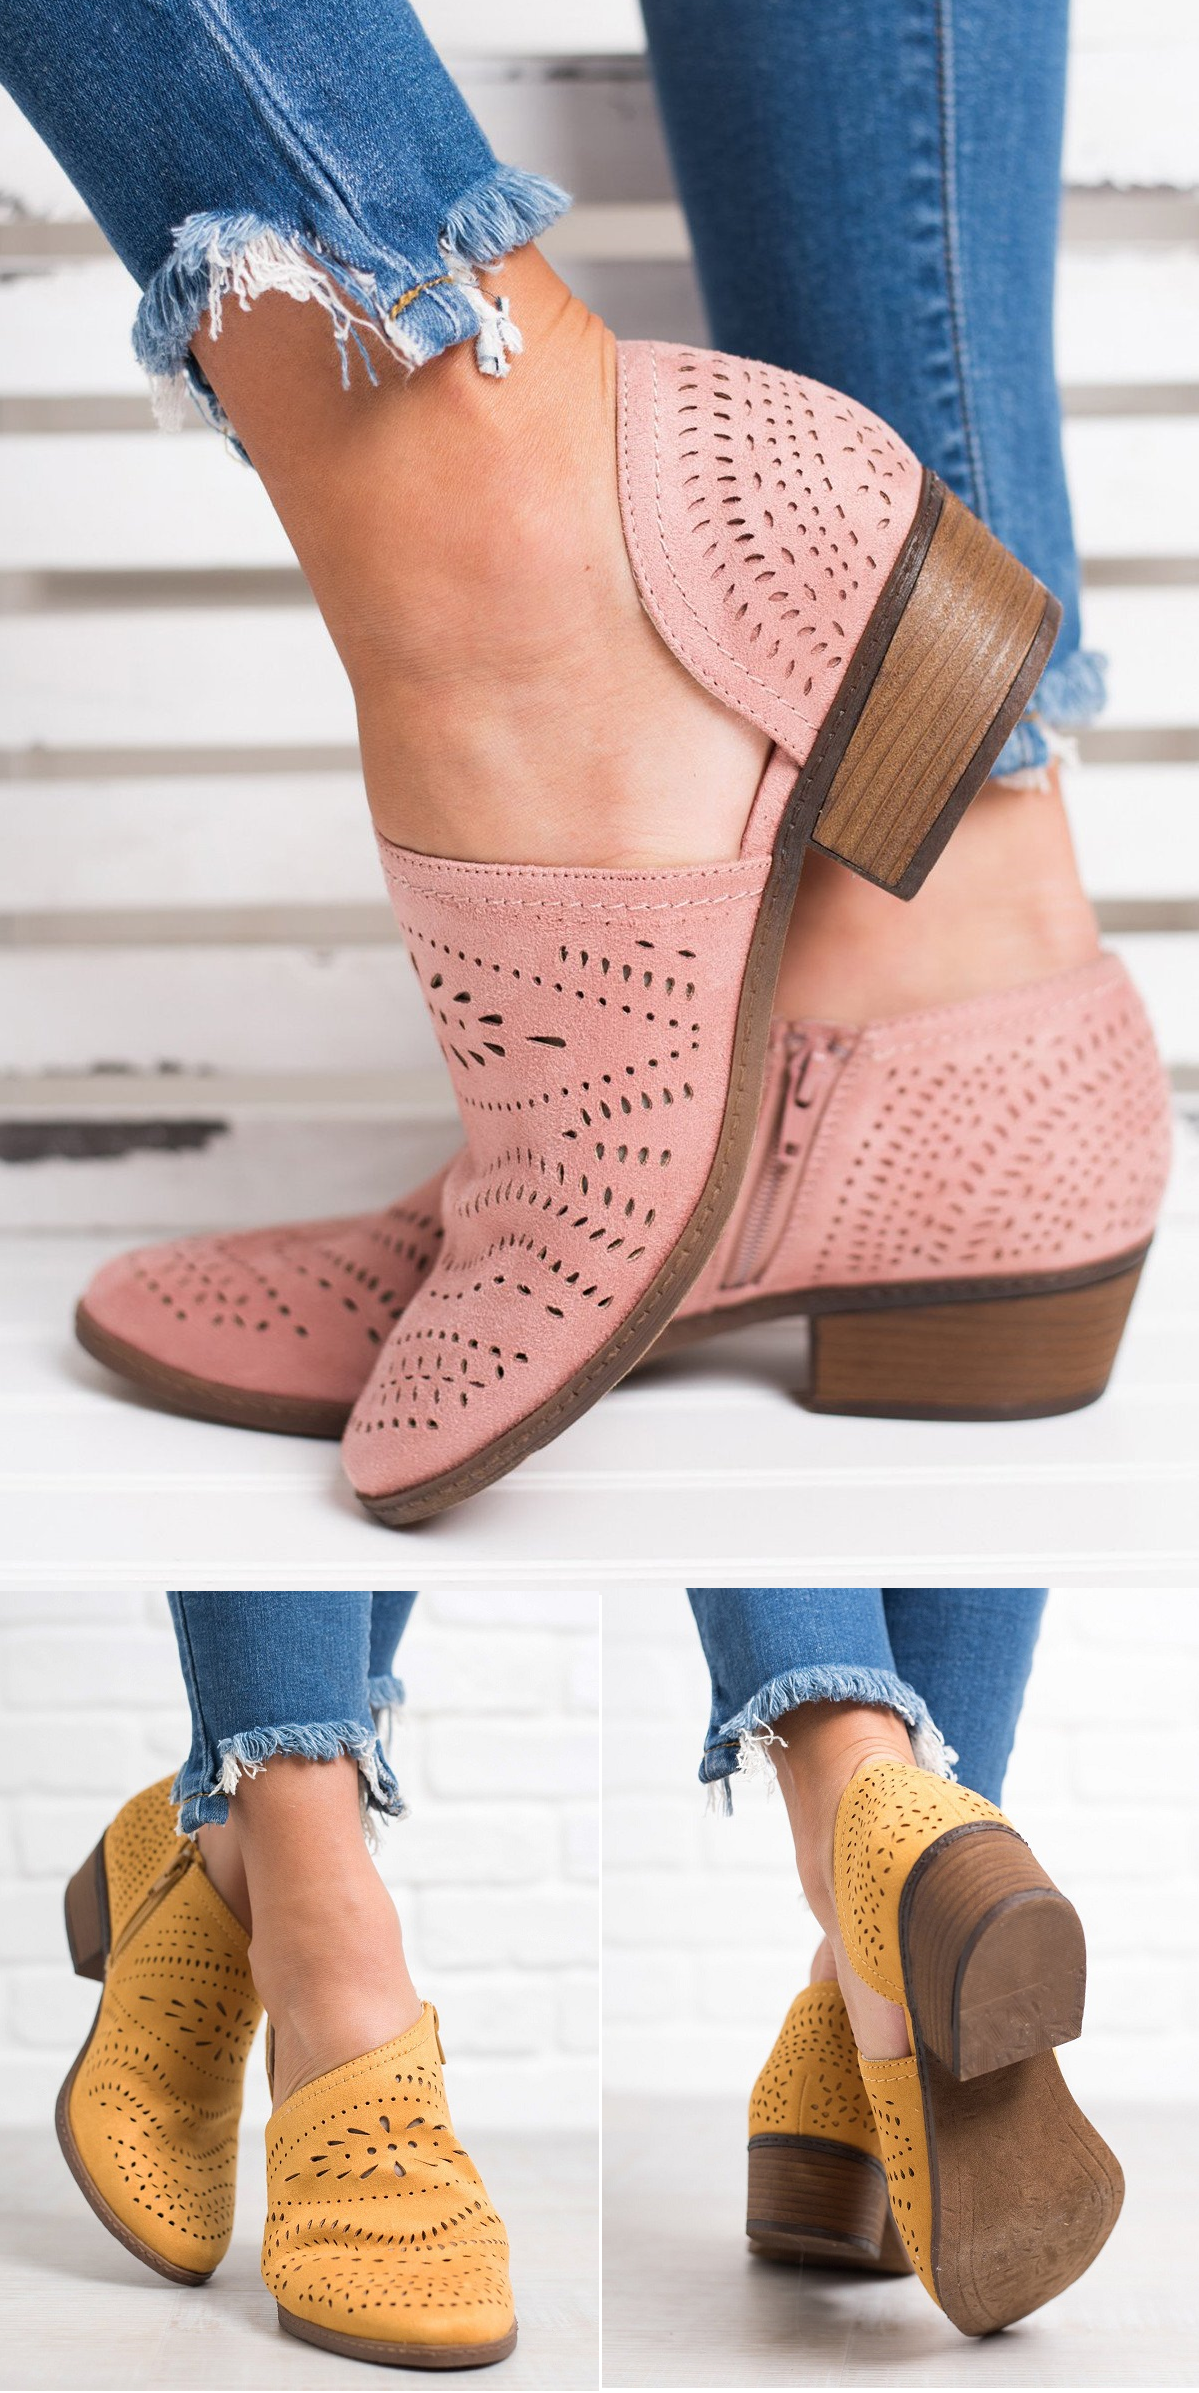 c51ef24ea4cf Free Shipping! Shop Now! Hollow-out Low Heel Cutout Booties Faux Suede  Zipper Ankle Boots